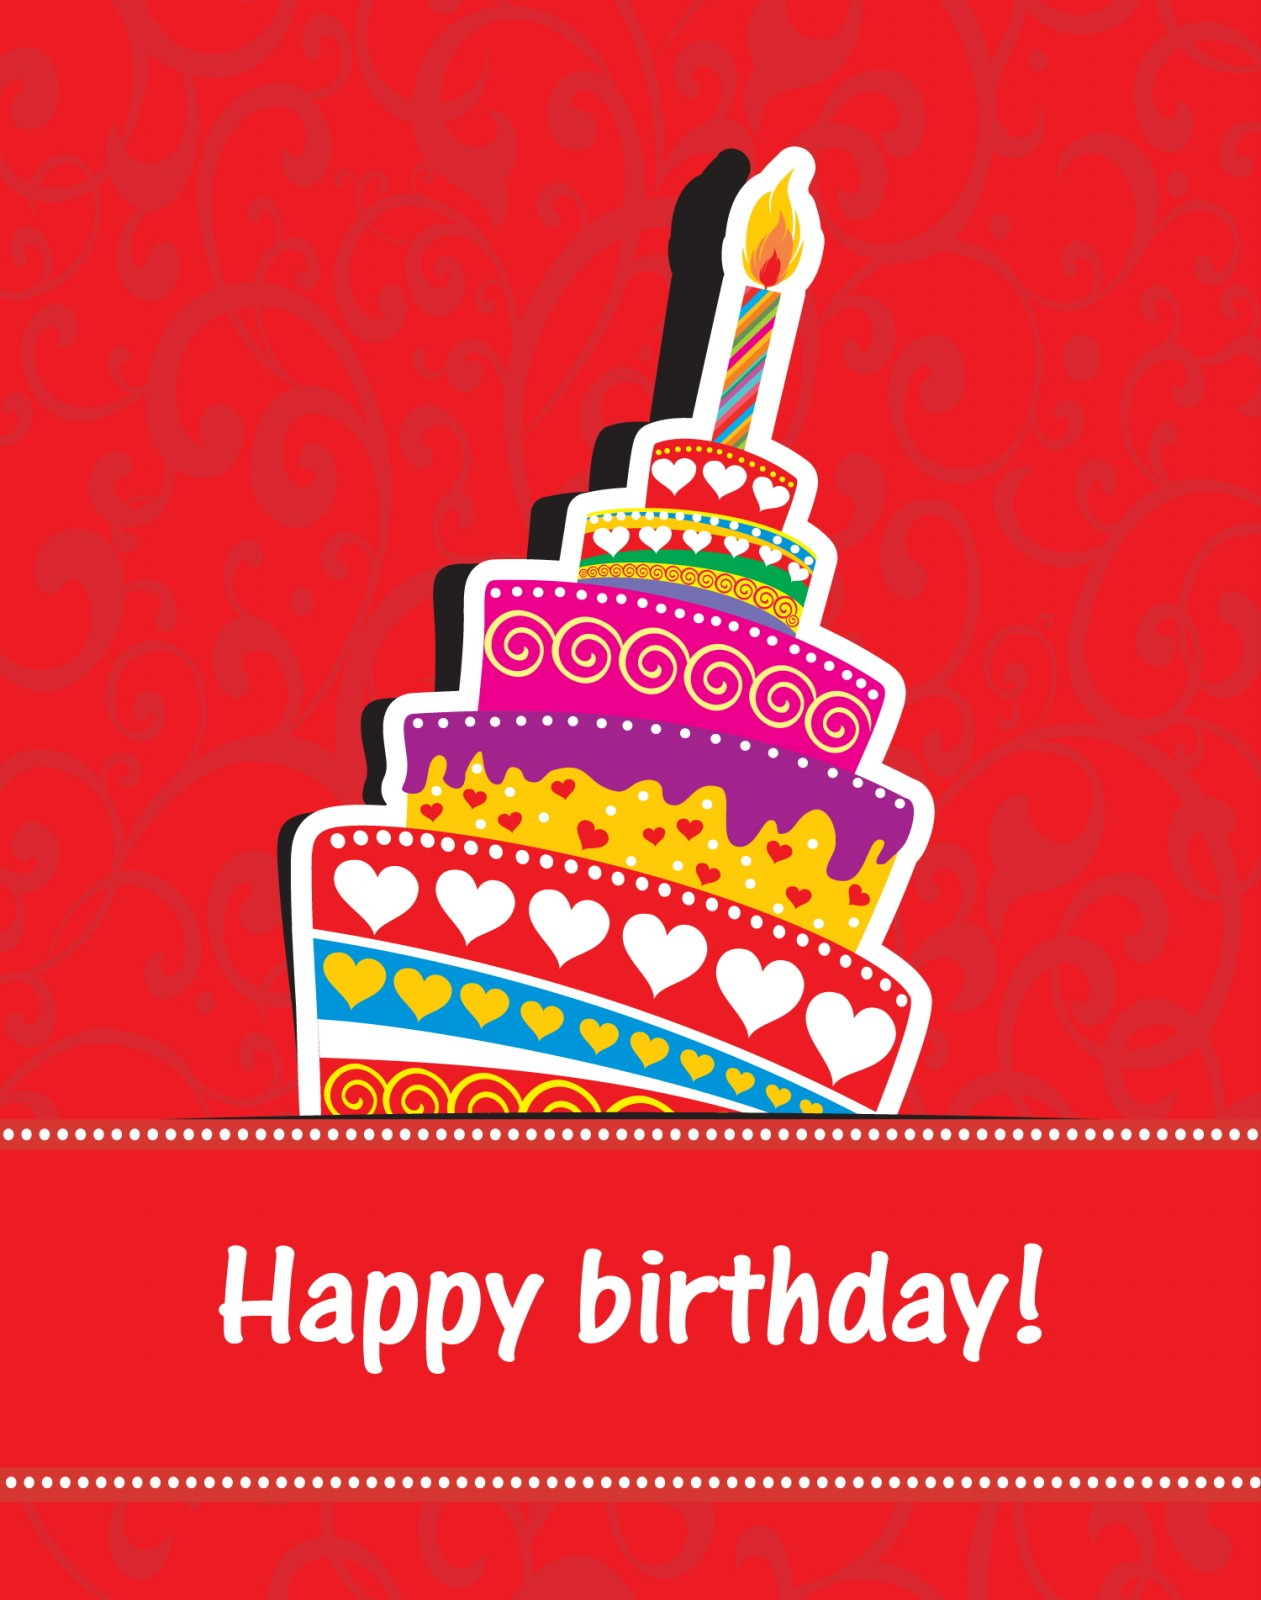 happy birthday greeting card design ; Happy-birthday-card